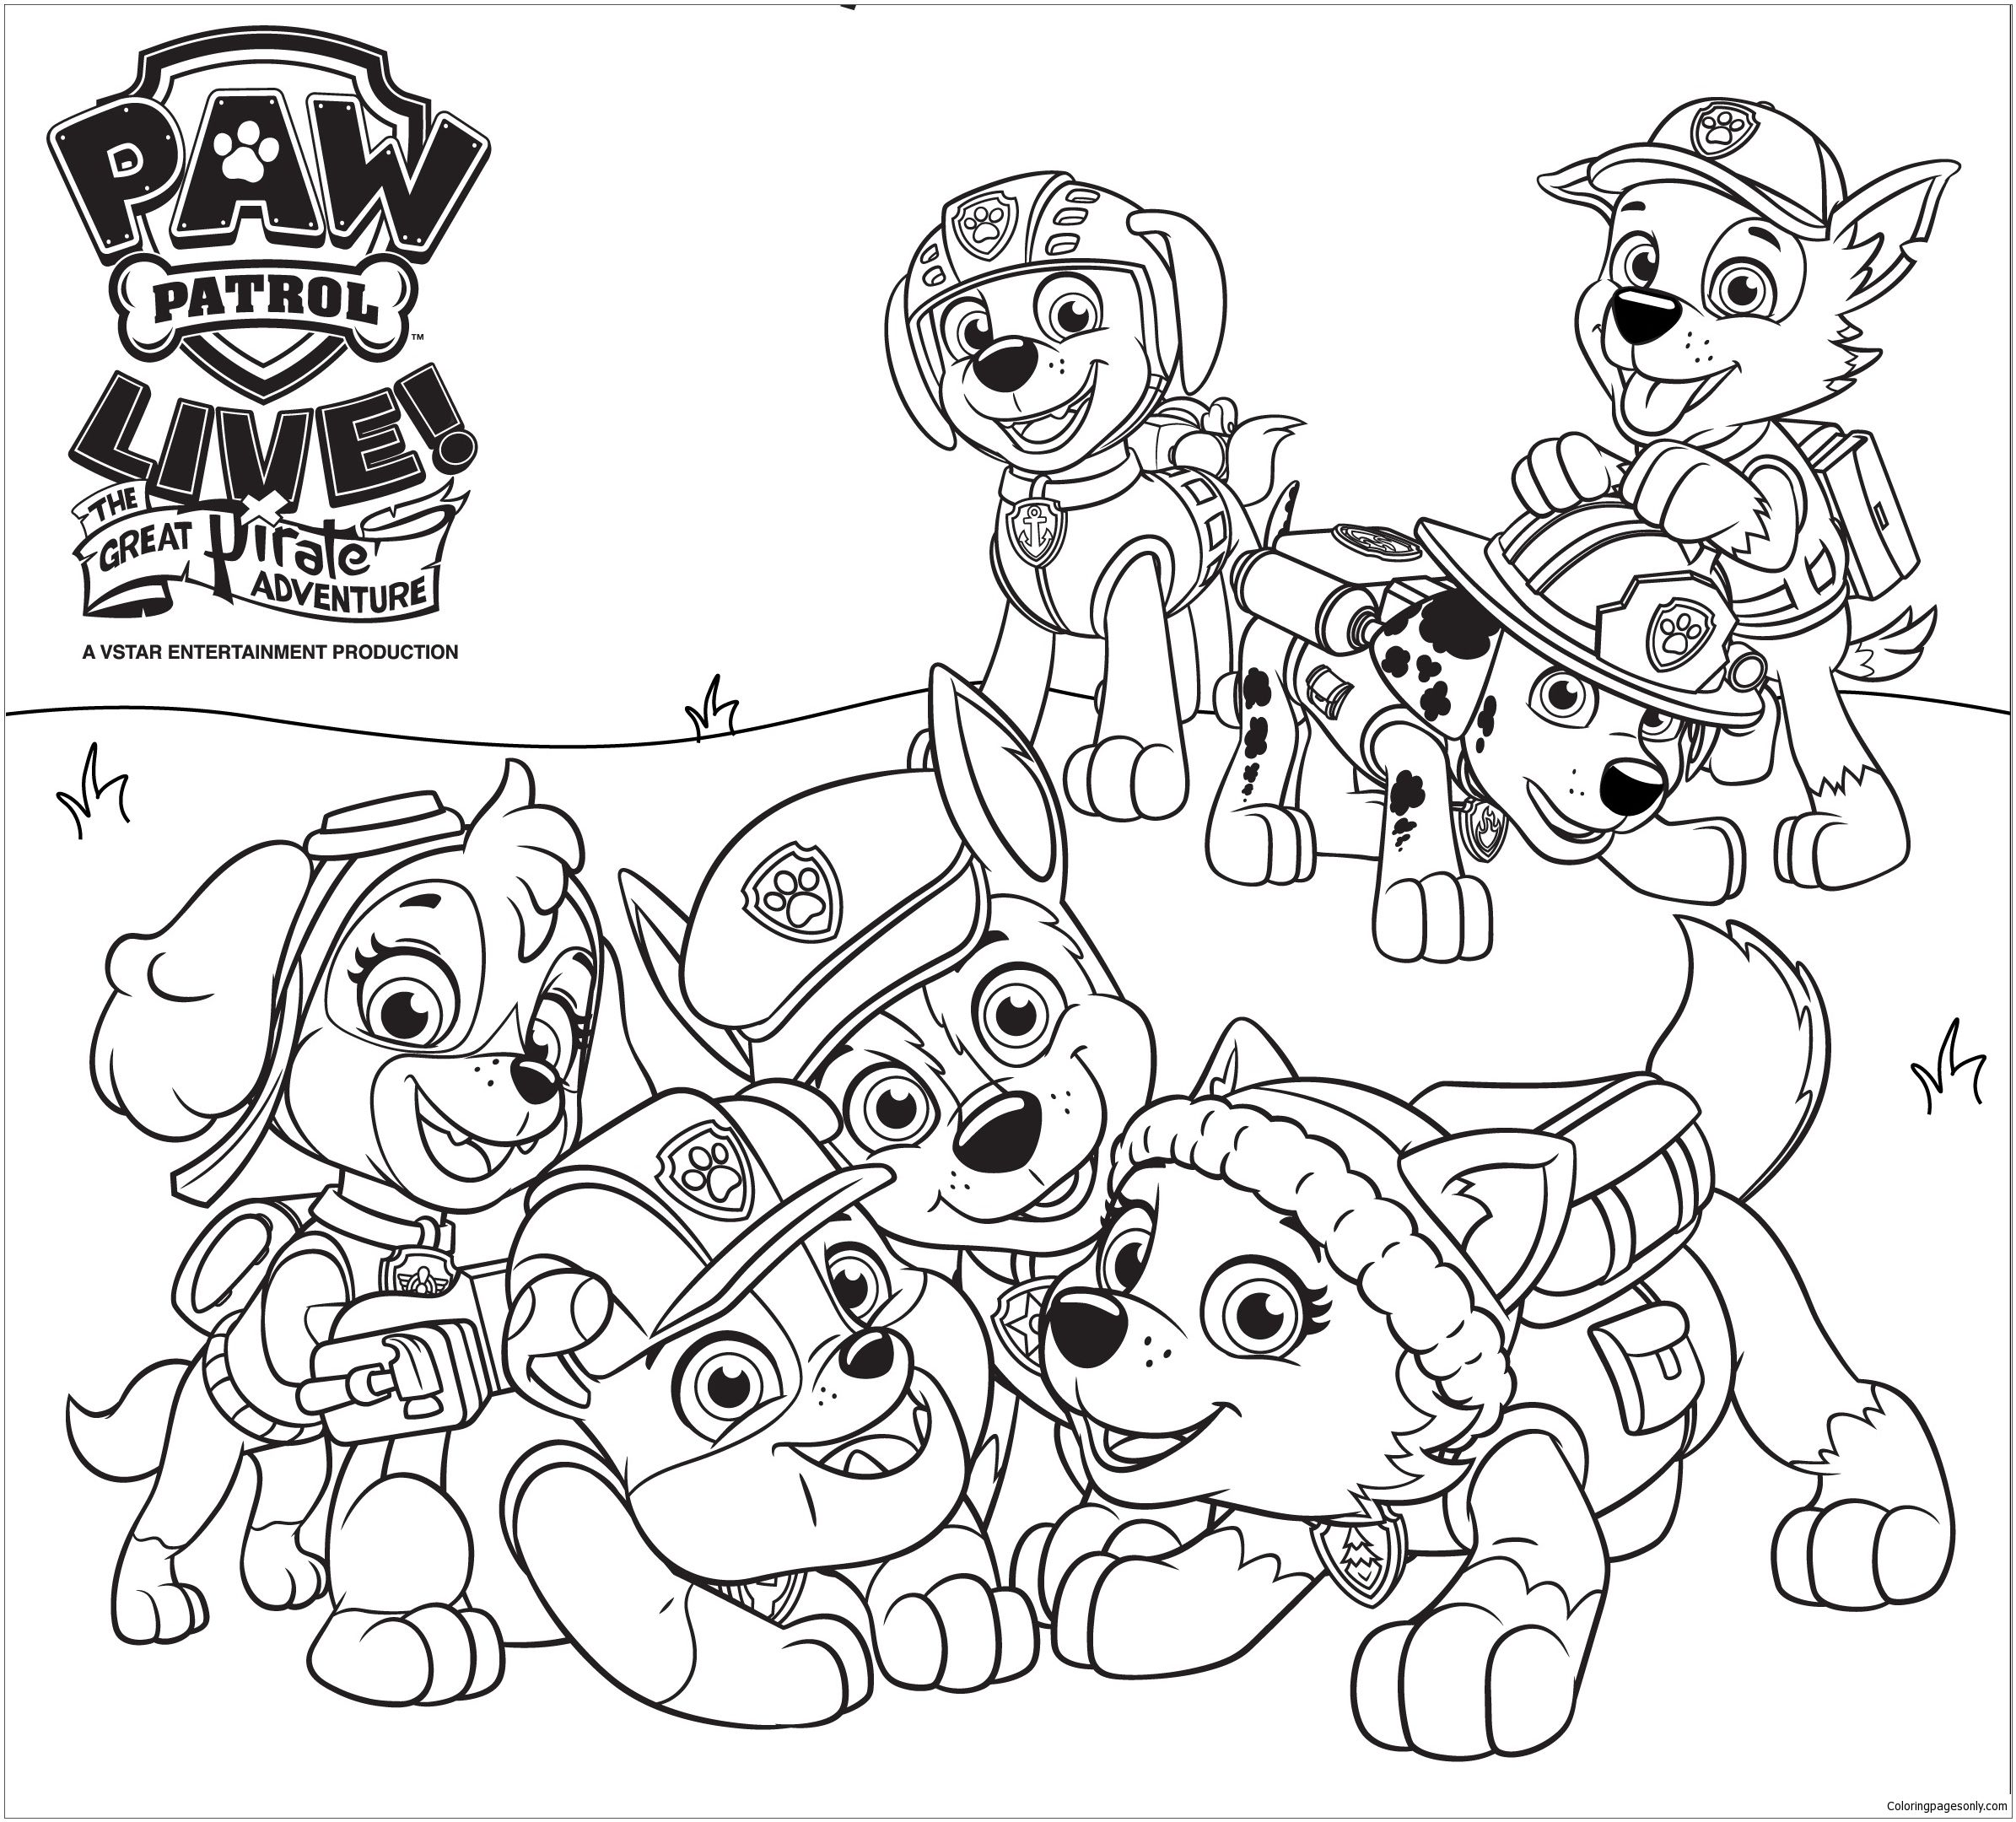 Paw Patrol 45 Coloring Page Paw Patrol Coloring Pages Pinterest